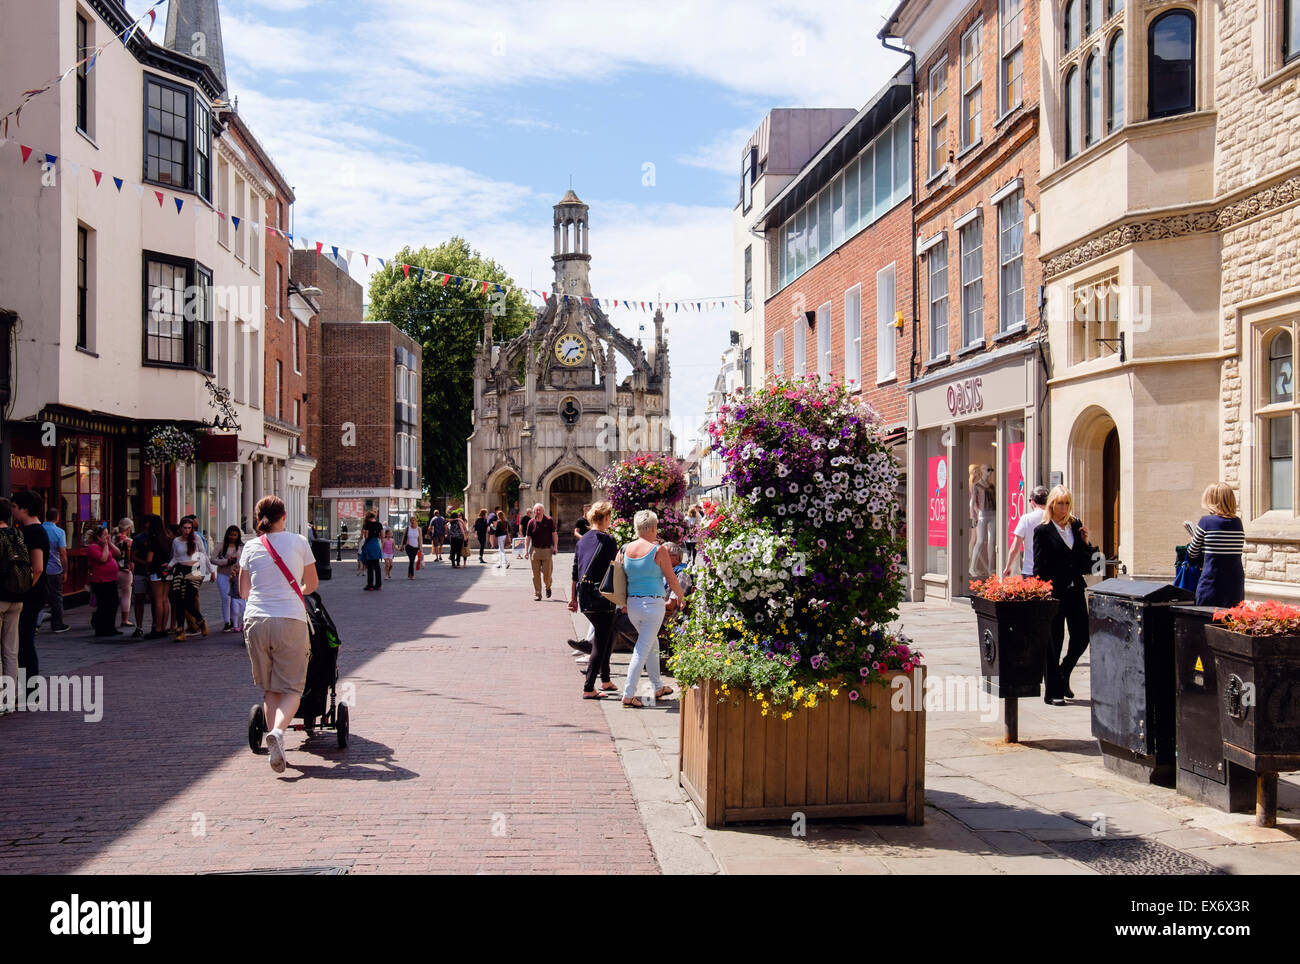 Street scene with view to old 16thc Market Cross with people shopping in Chichester city centre. East Street Chichester - Stock Image